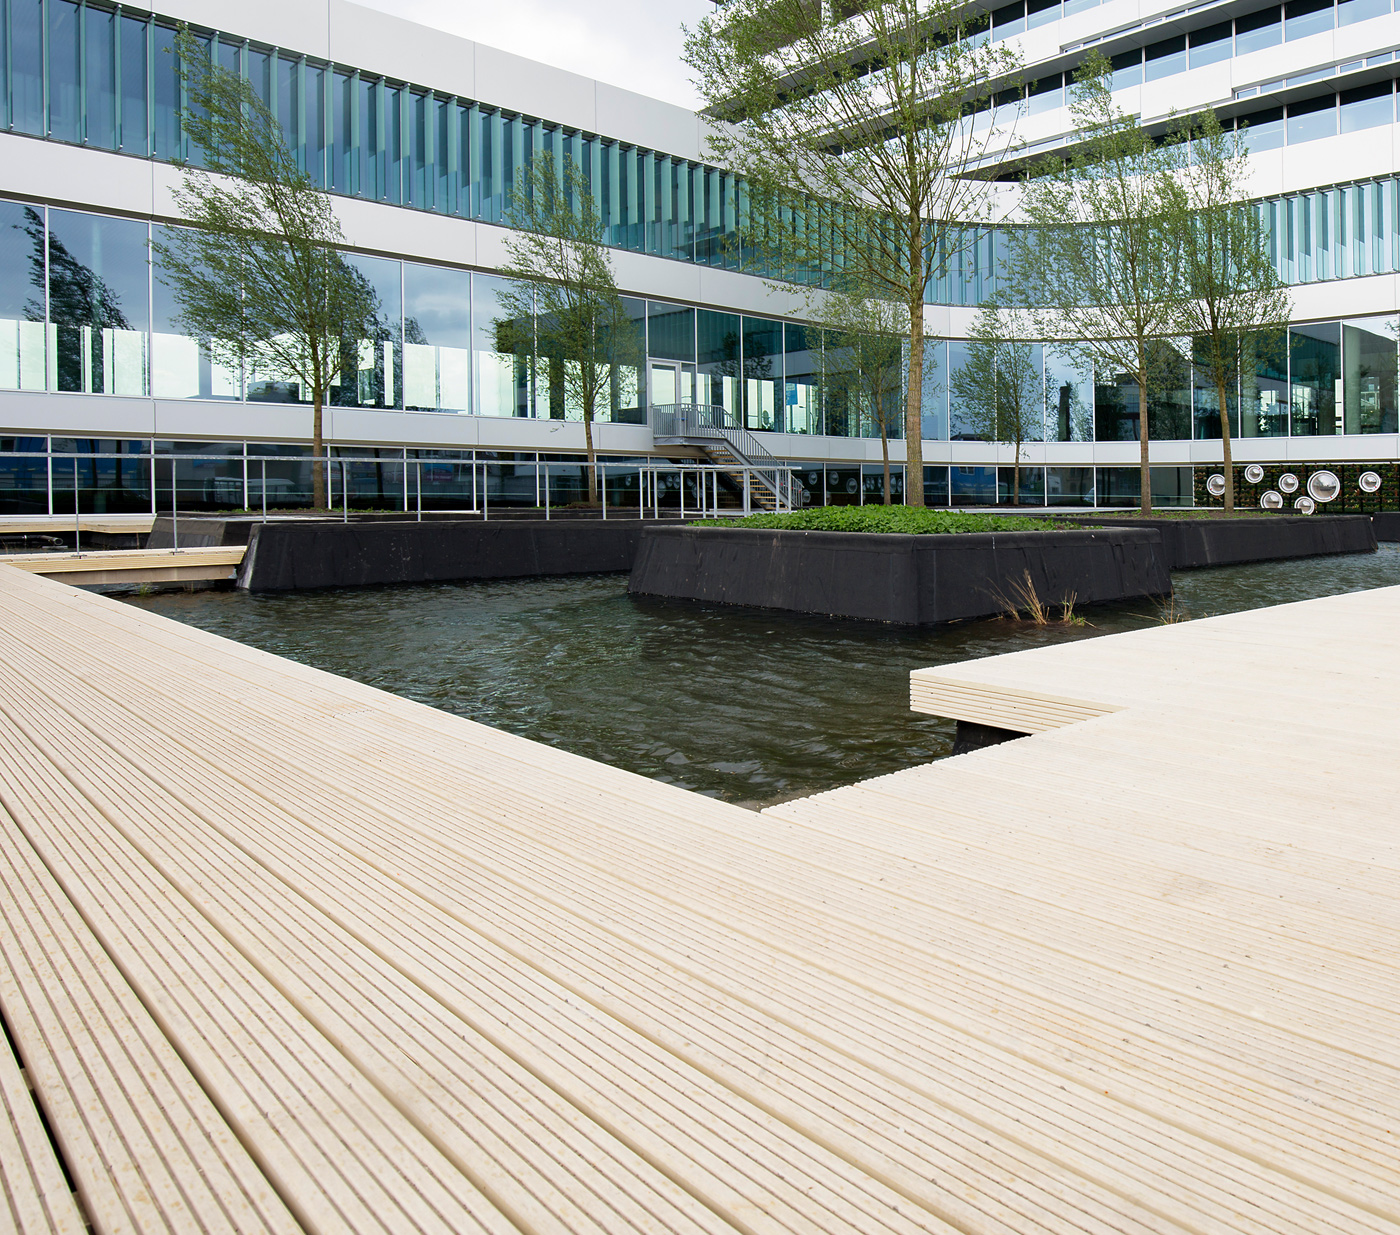 Things to consider when choosing timber for decking